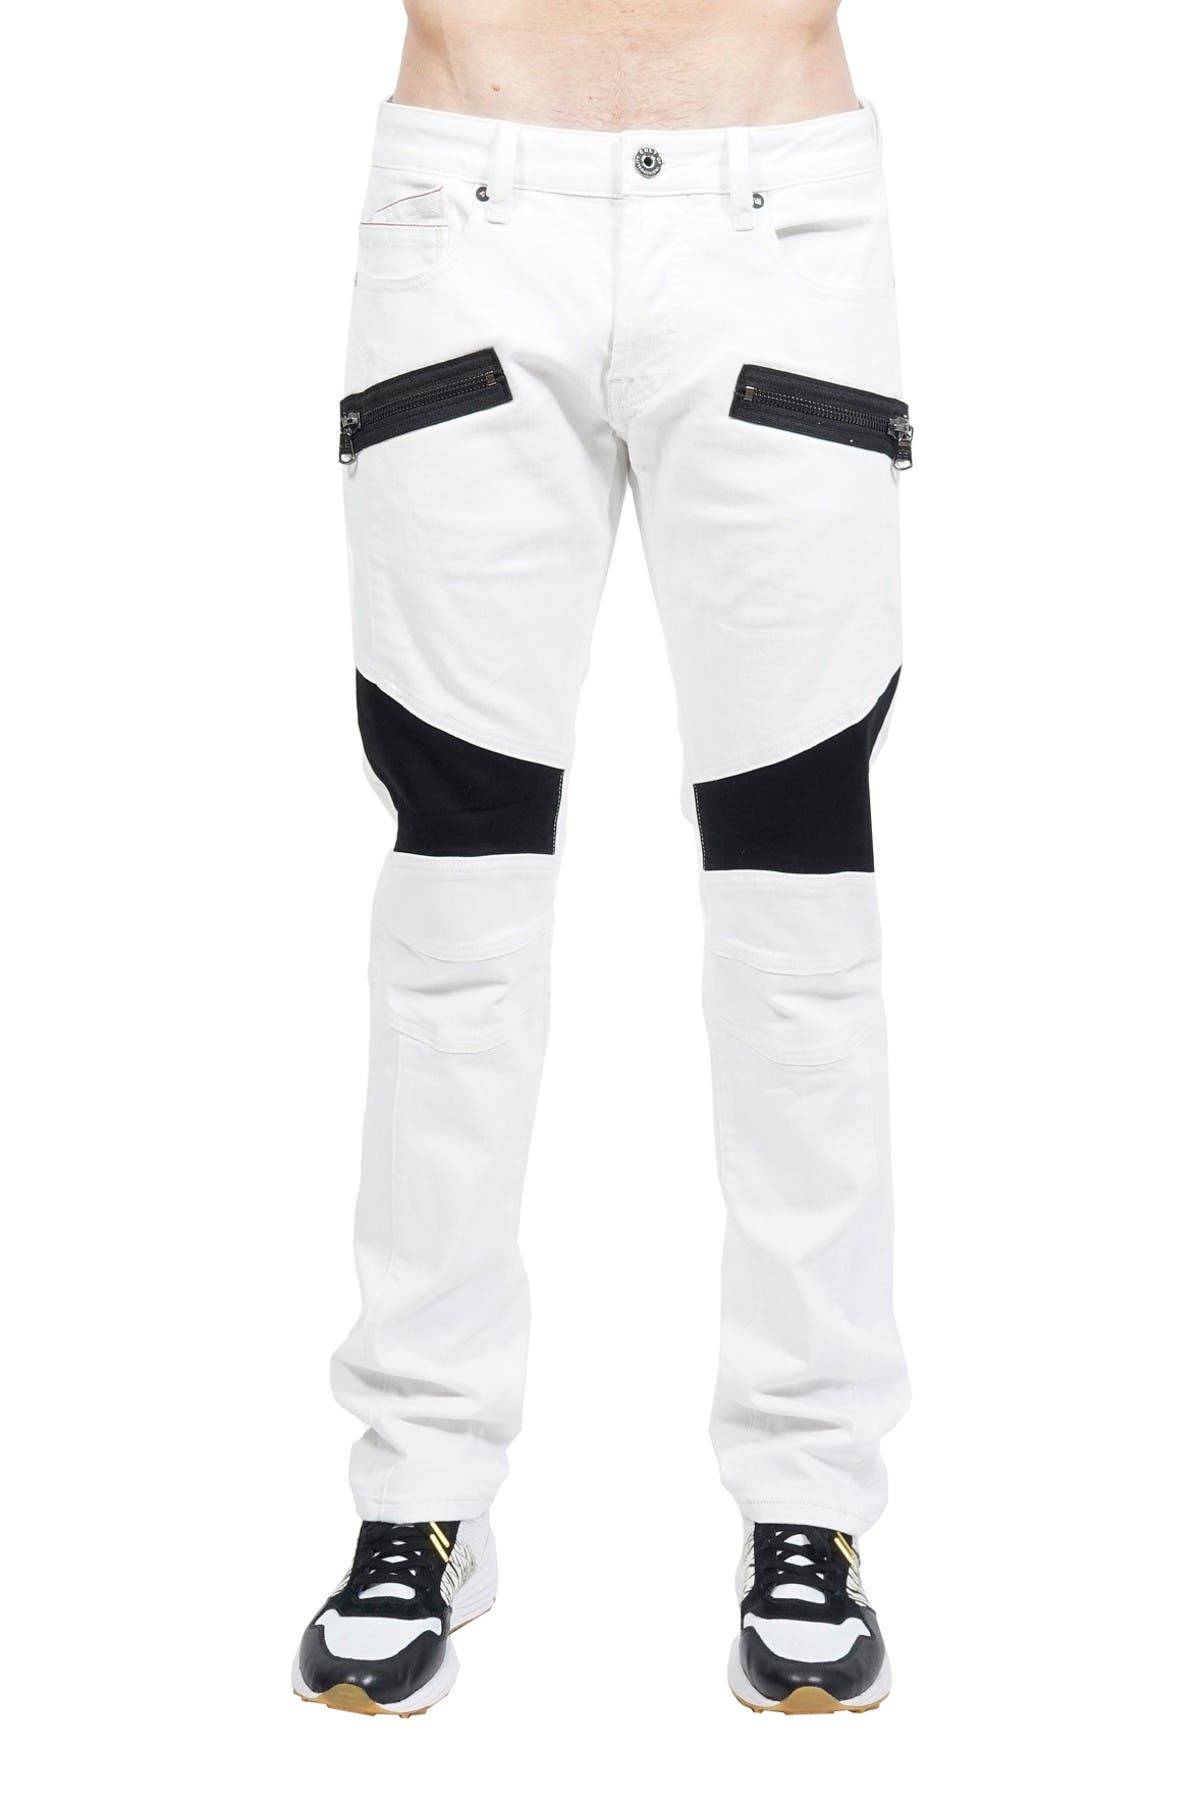 Image of Cult Of Individuality Greaser Moto Denim Jeans